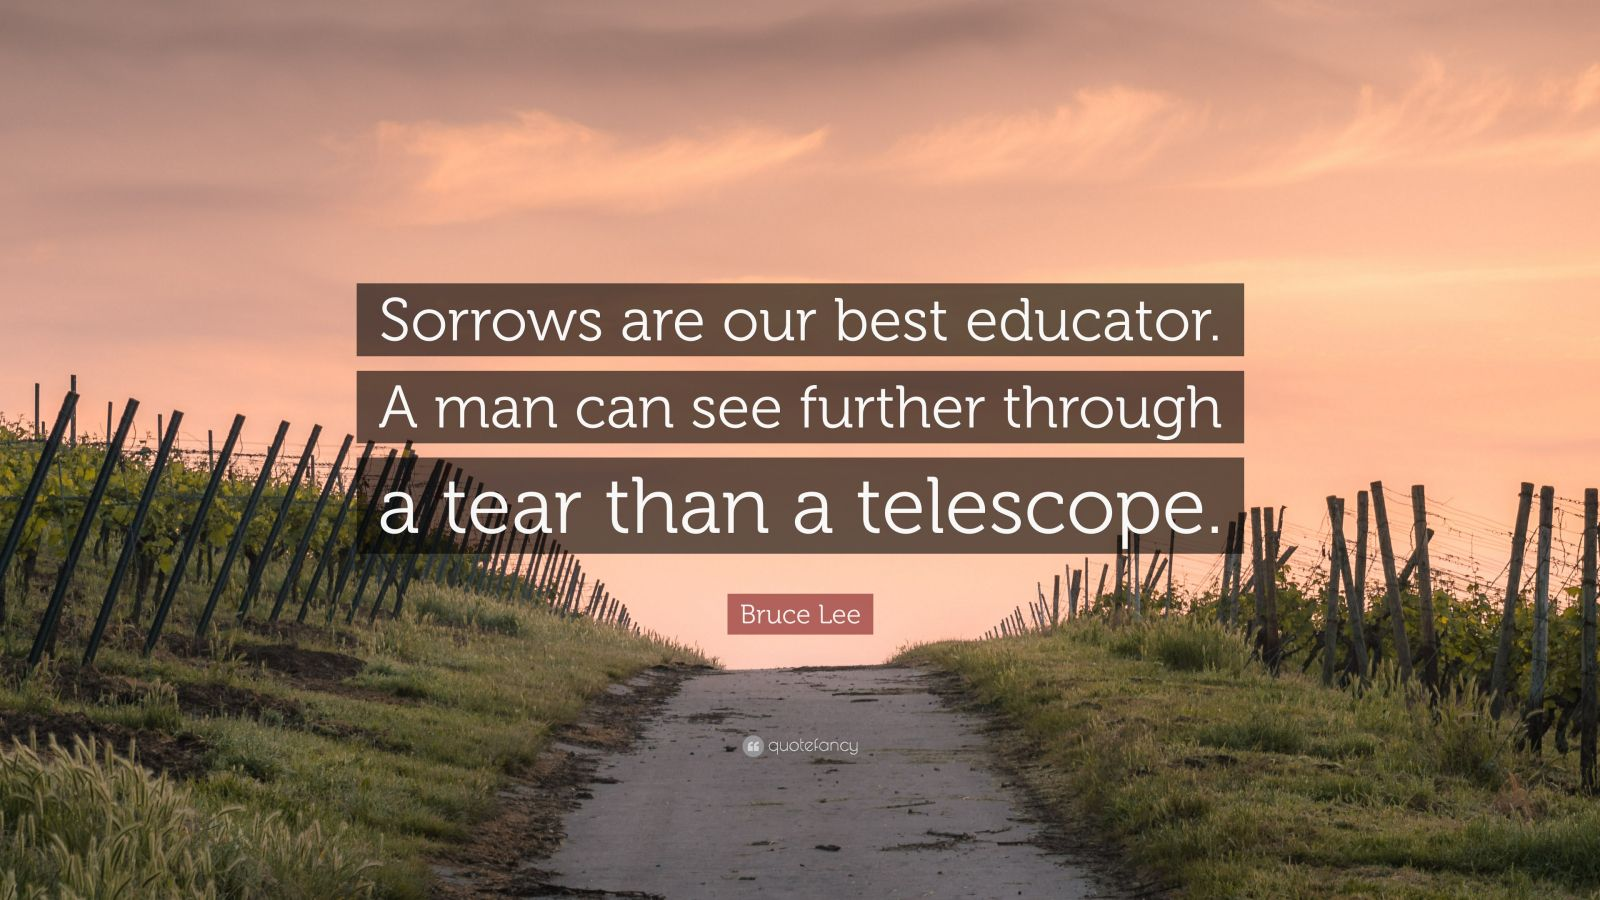 """Bruce Lee Quote: """"Sorrows are our best educator. A man can see further through a tear than a telescope."""""""